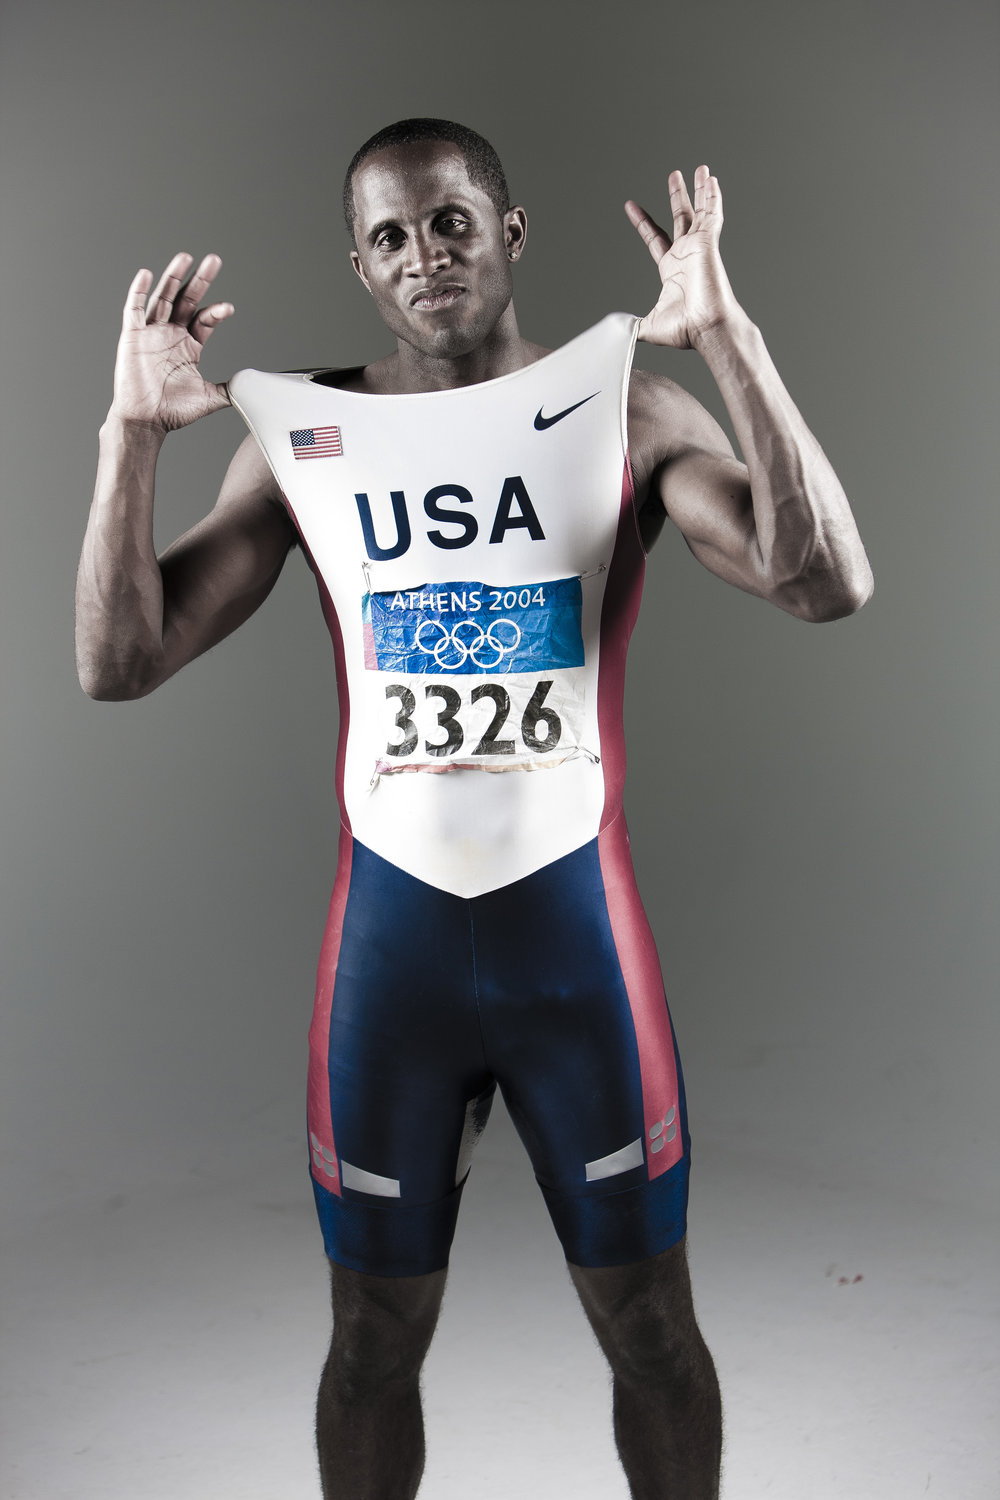 Dwight+Phillips+13th+IAAF+World+Athletics+BRyWsAU74dkl.jpg